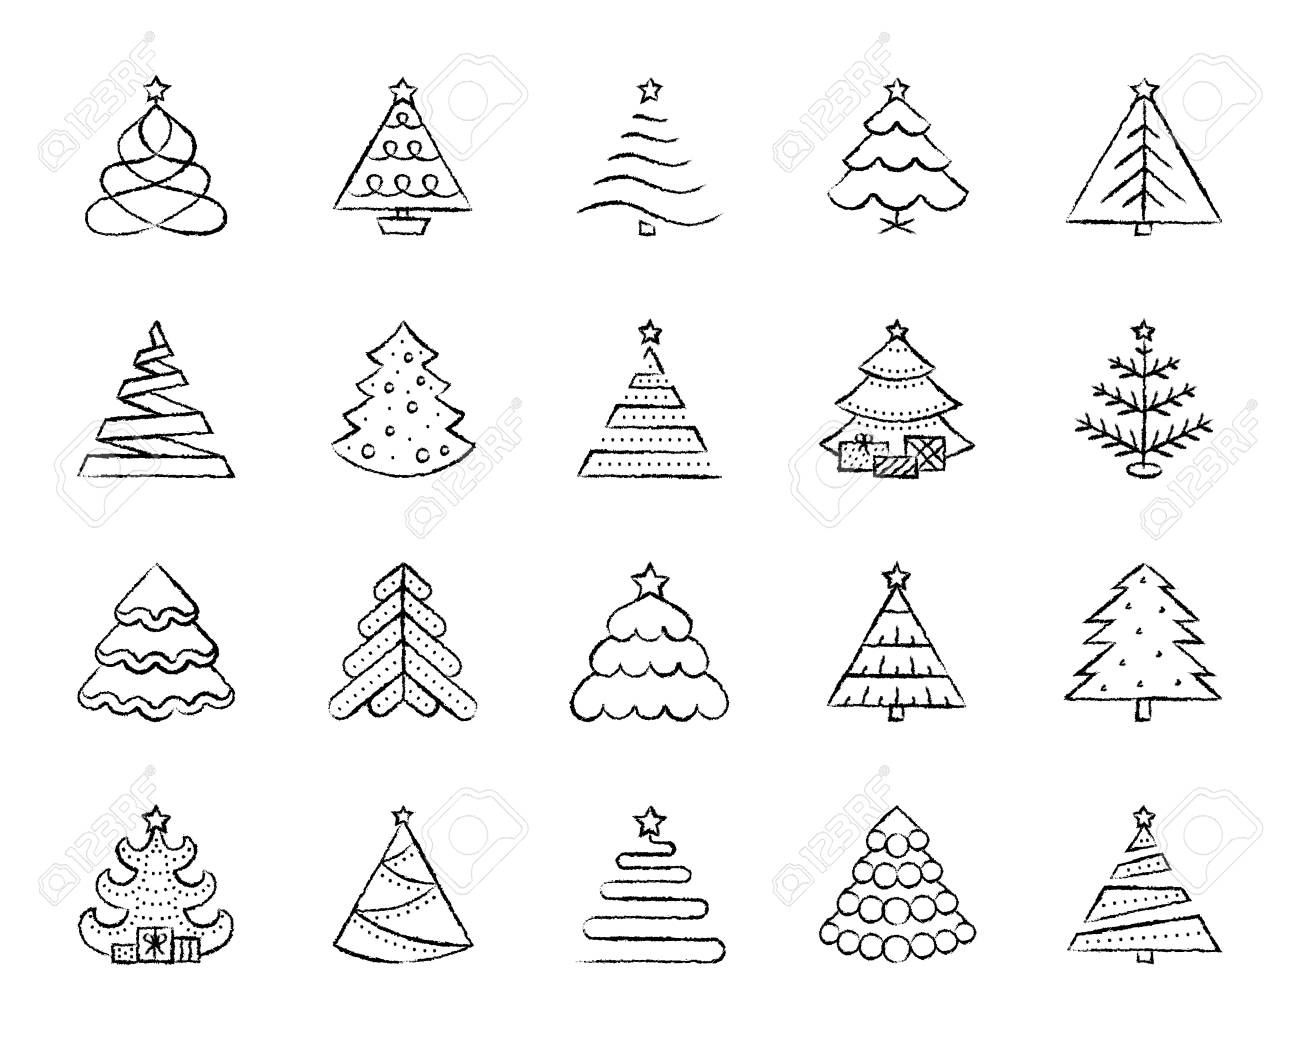 Christmas Tree Charcoal Icon Set Grunge Outline Sign Kit Of Royalty Free Cliparts Vectors And Stock Illustration Image 107974657